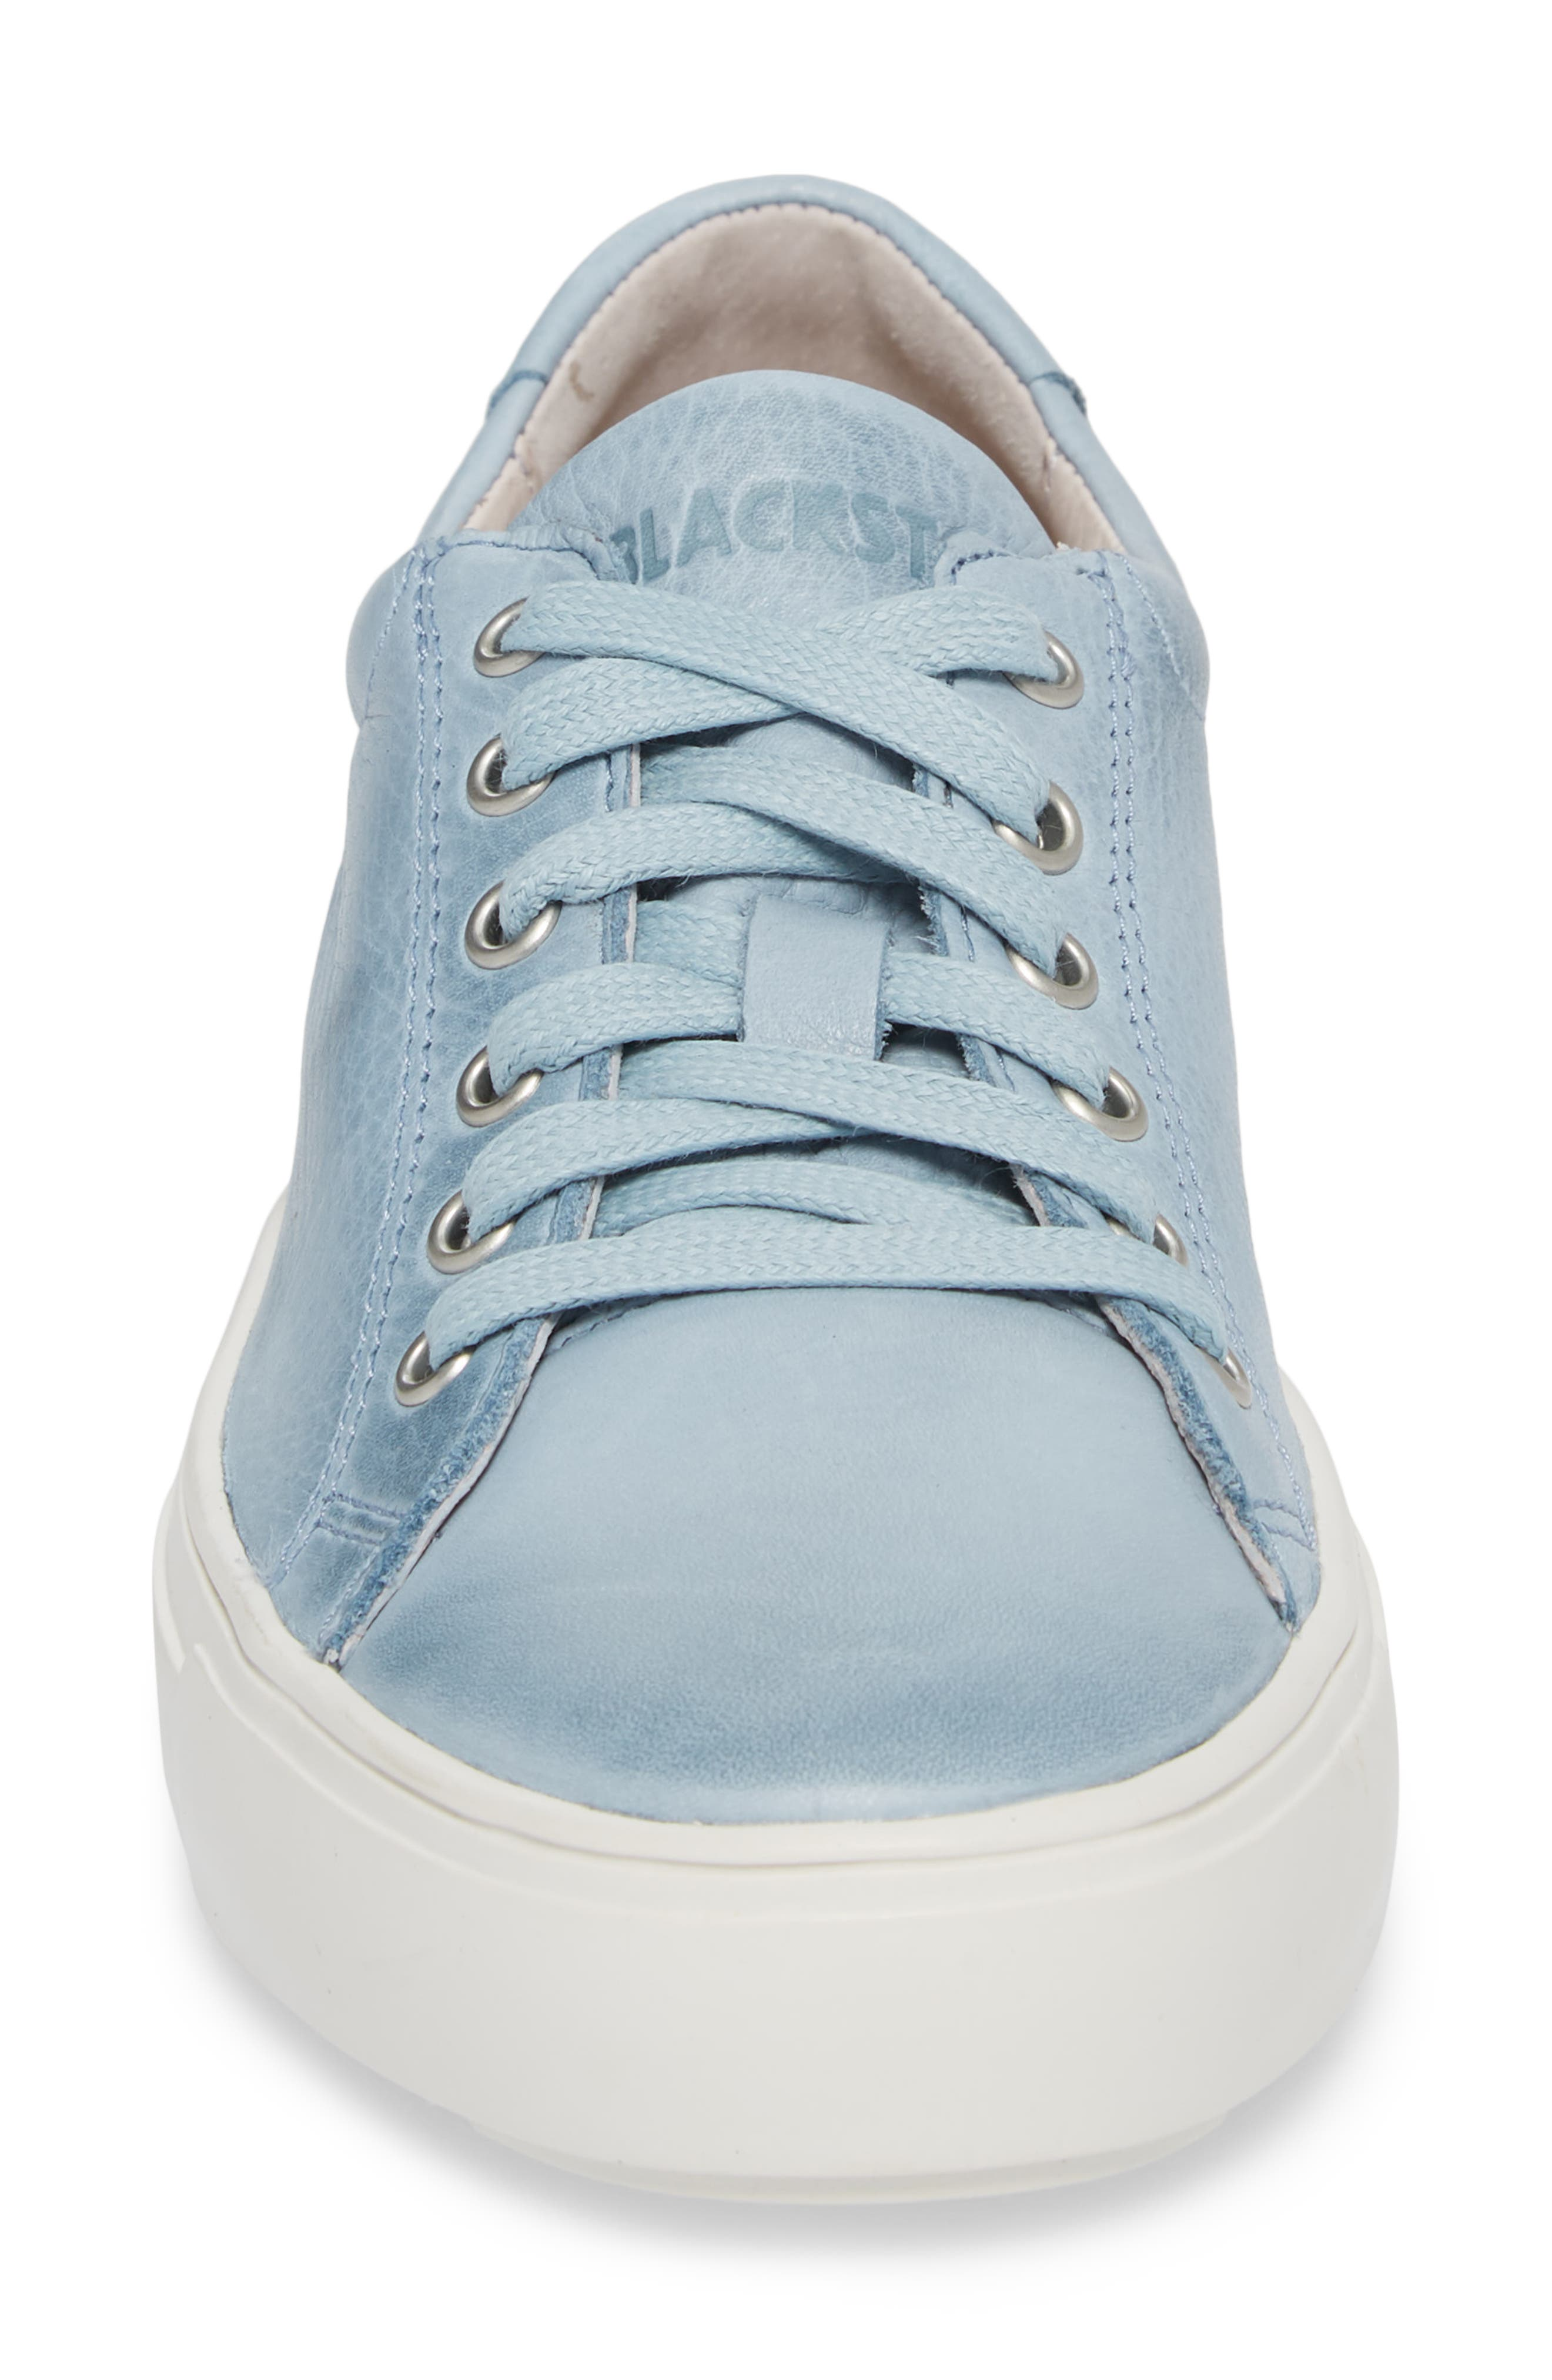 PL71 Low Top Sneaker,                             Alternate thumbnail 4, color,                             Sky Blue Leather